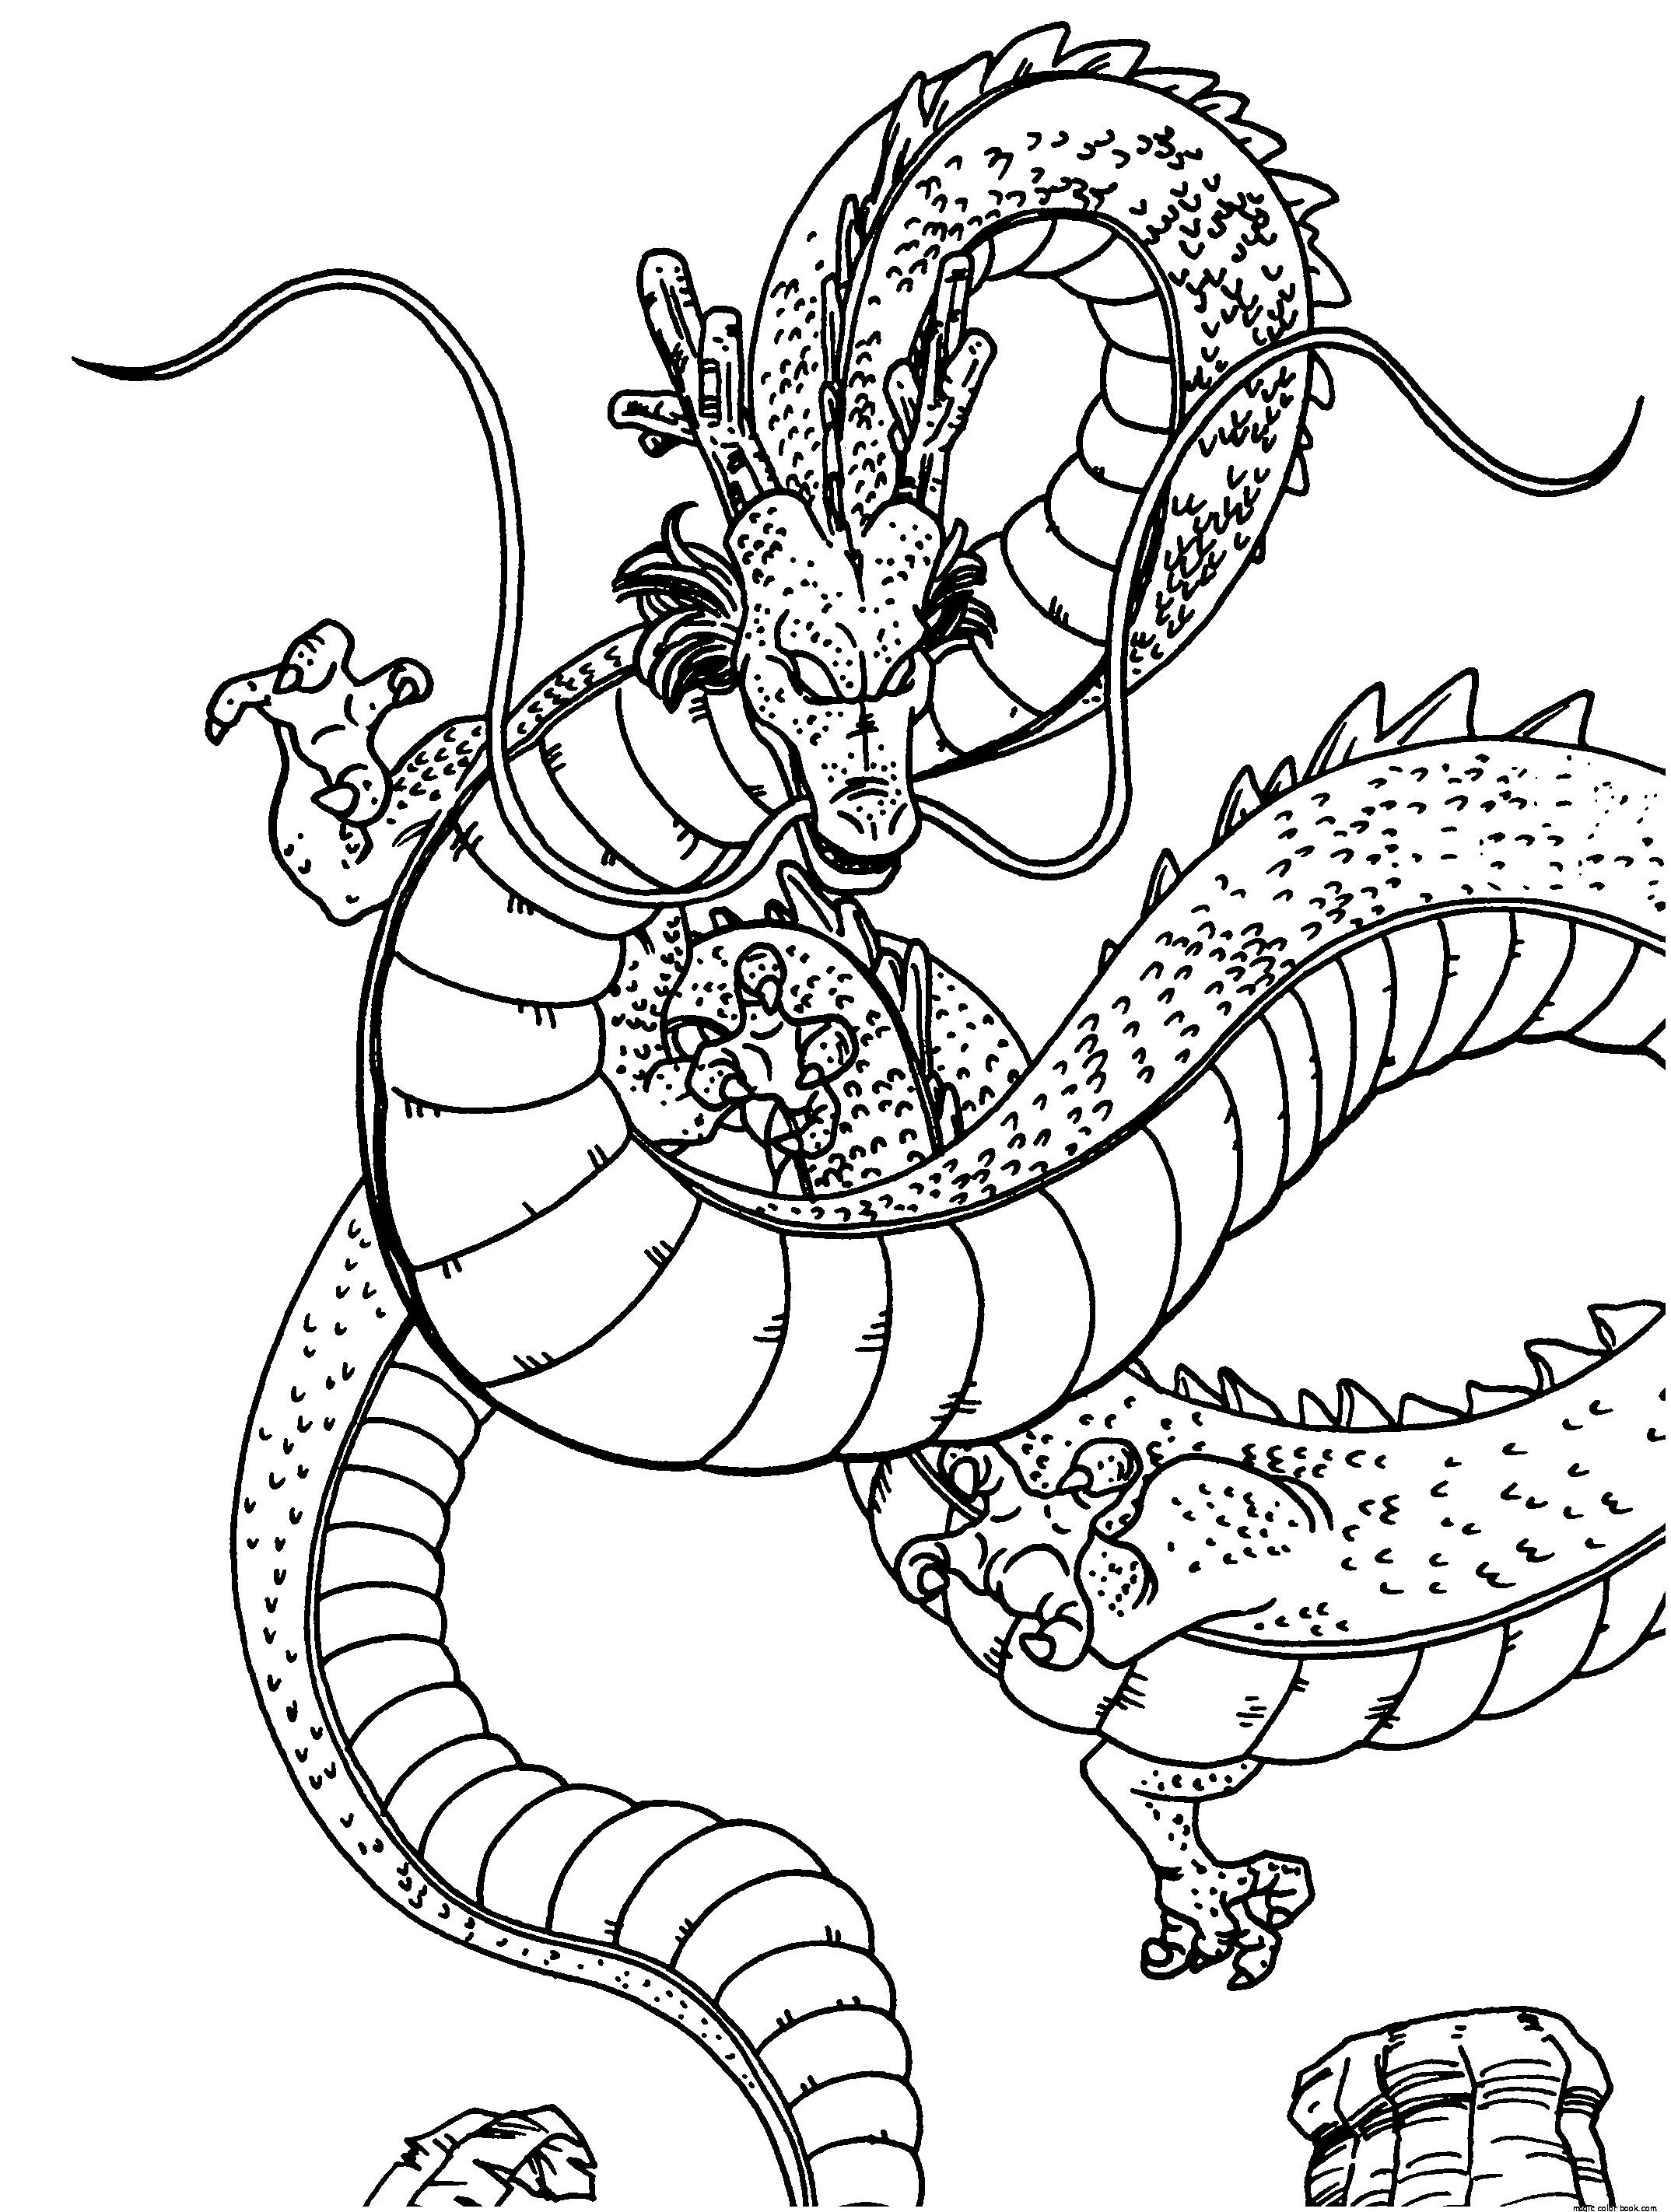 dragon ball af printable coloring pages | Printable Dragon Ball Z Coloring Pages 31 HD Arilitv Com ...